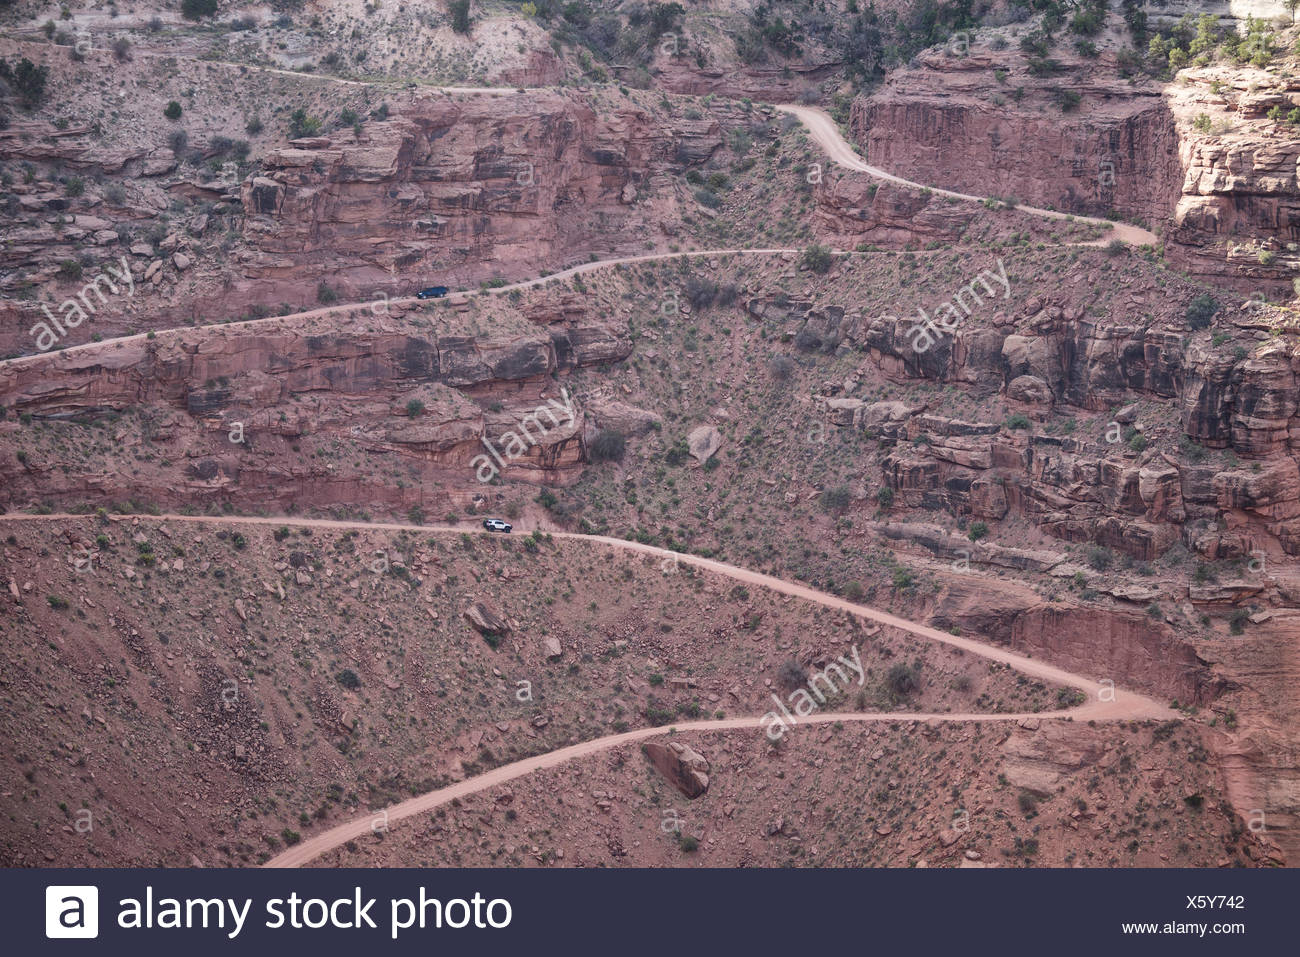 Colorado Plateau, Utah, Canyonland National Park, Island in the Sky, Schafer Canyon road - Stock Image